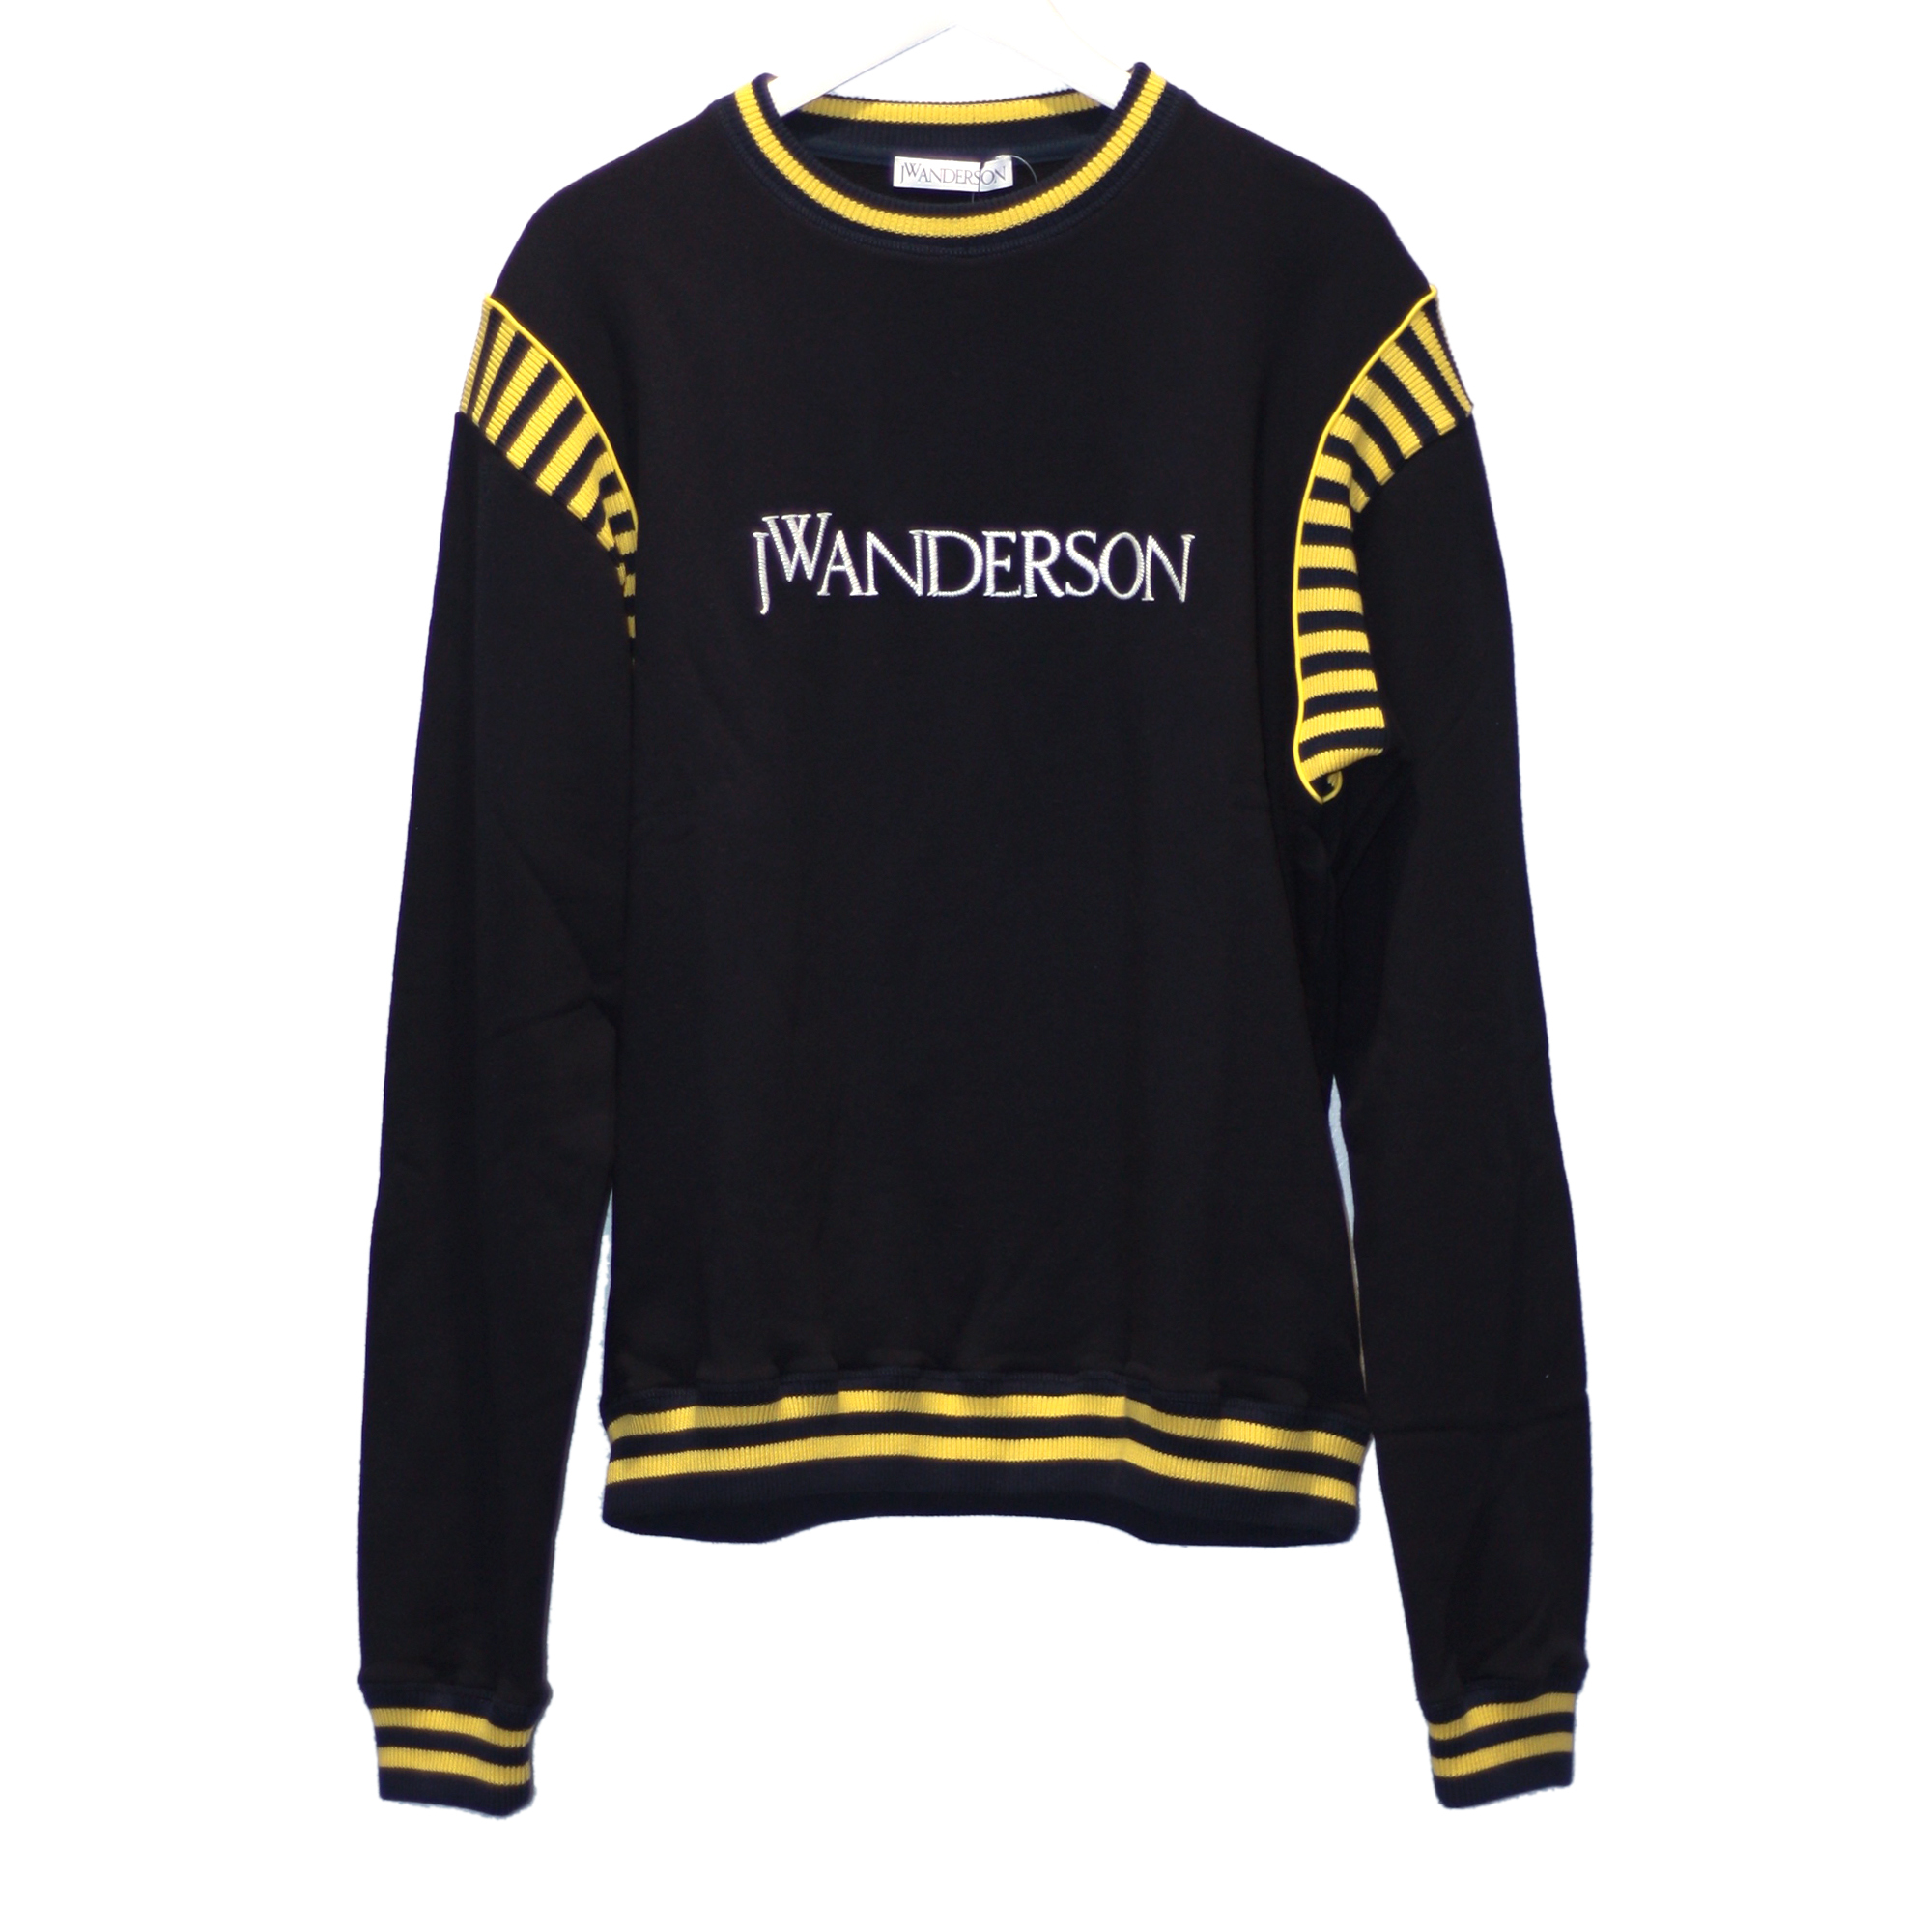 JW ANDERSON Knit Swater NAVY